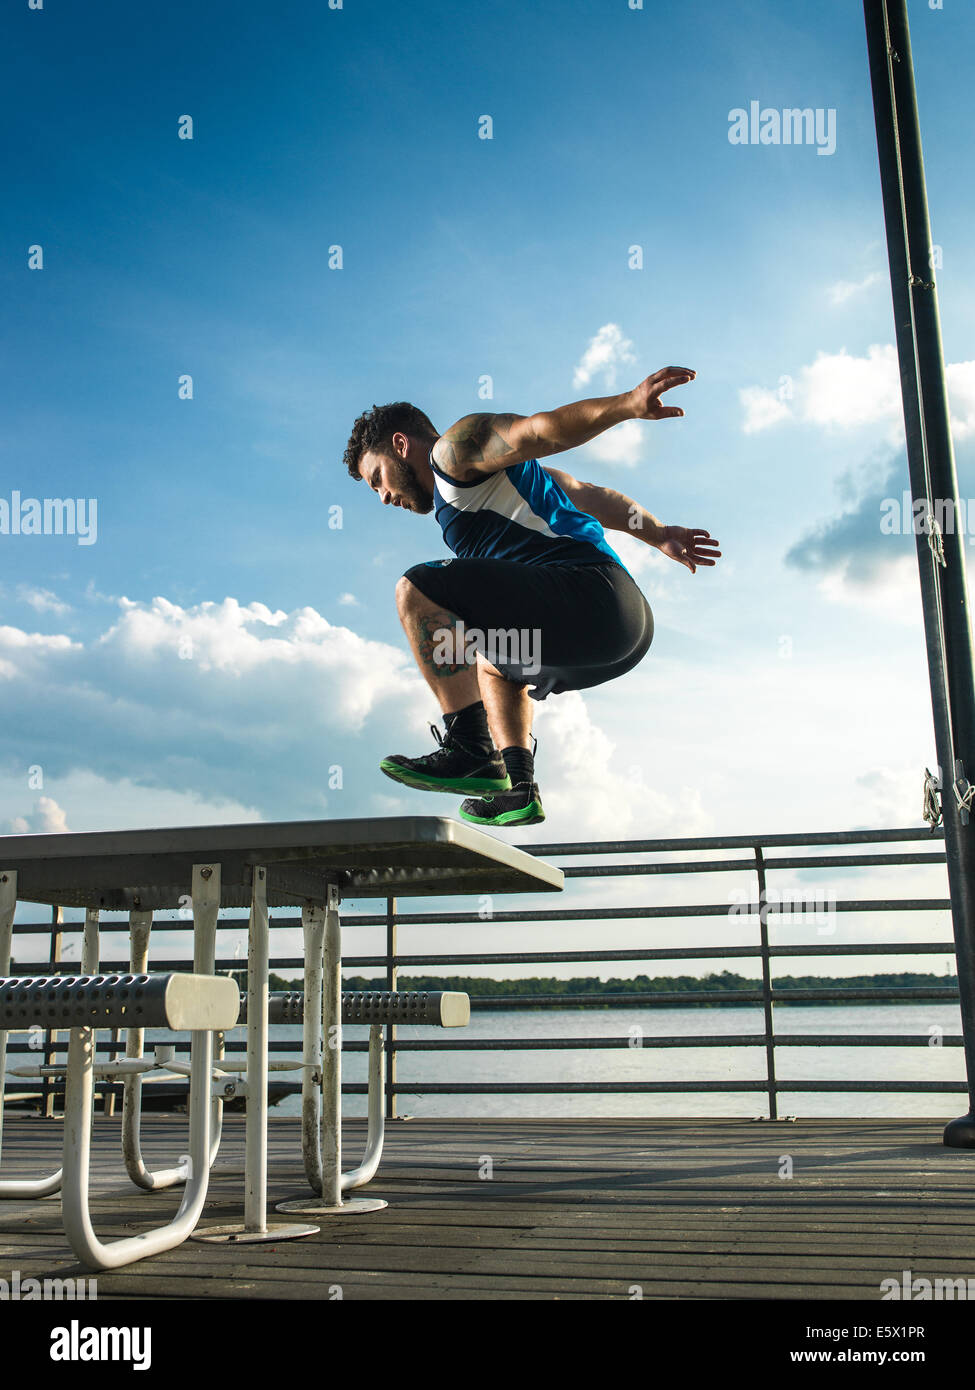 Young man jumping backwards from picnic table on lake pier - Stock Image